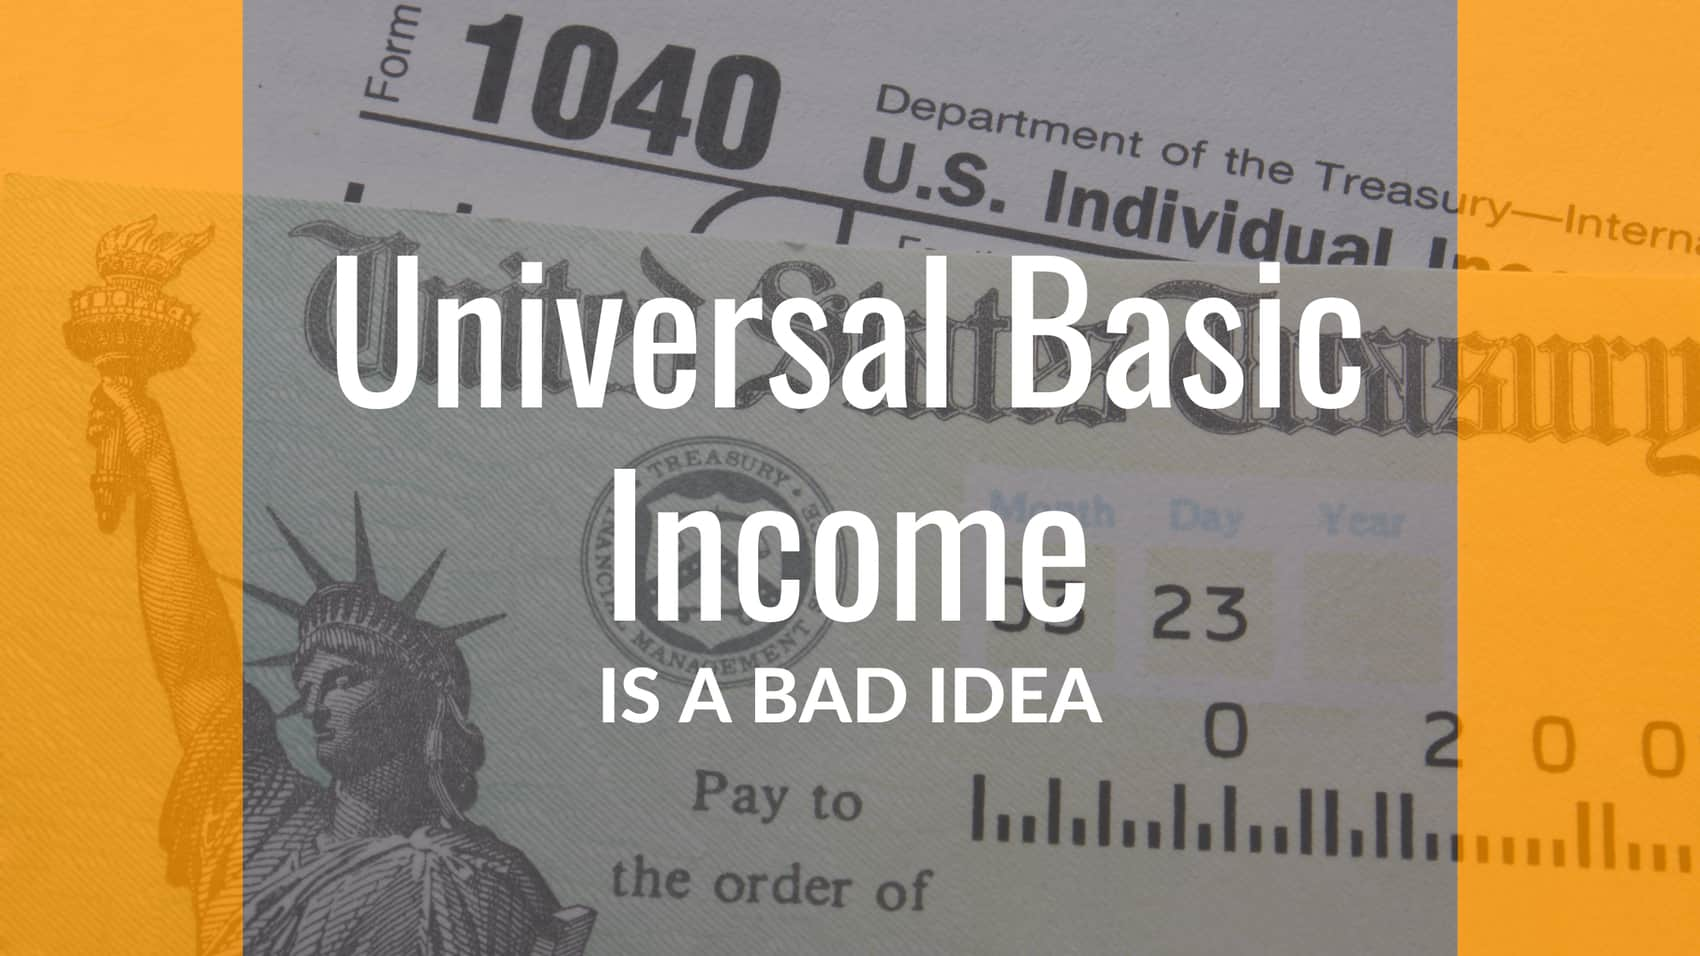 Universal Basic Income Bad Idea Poster